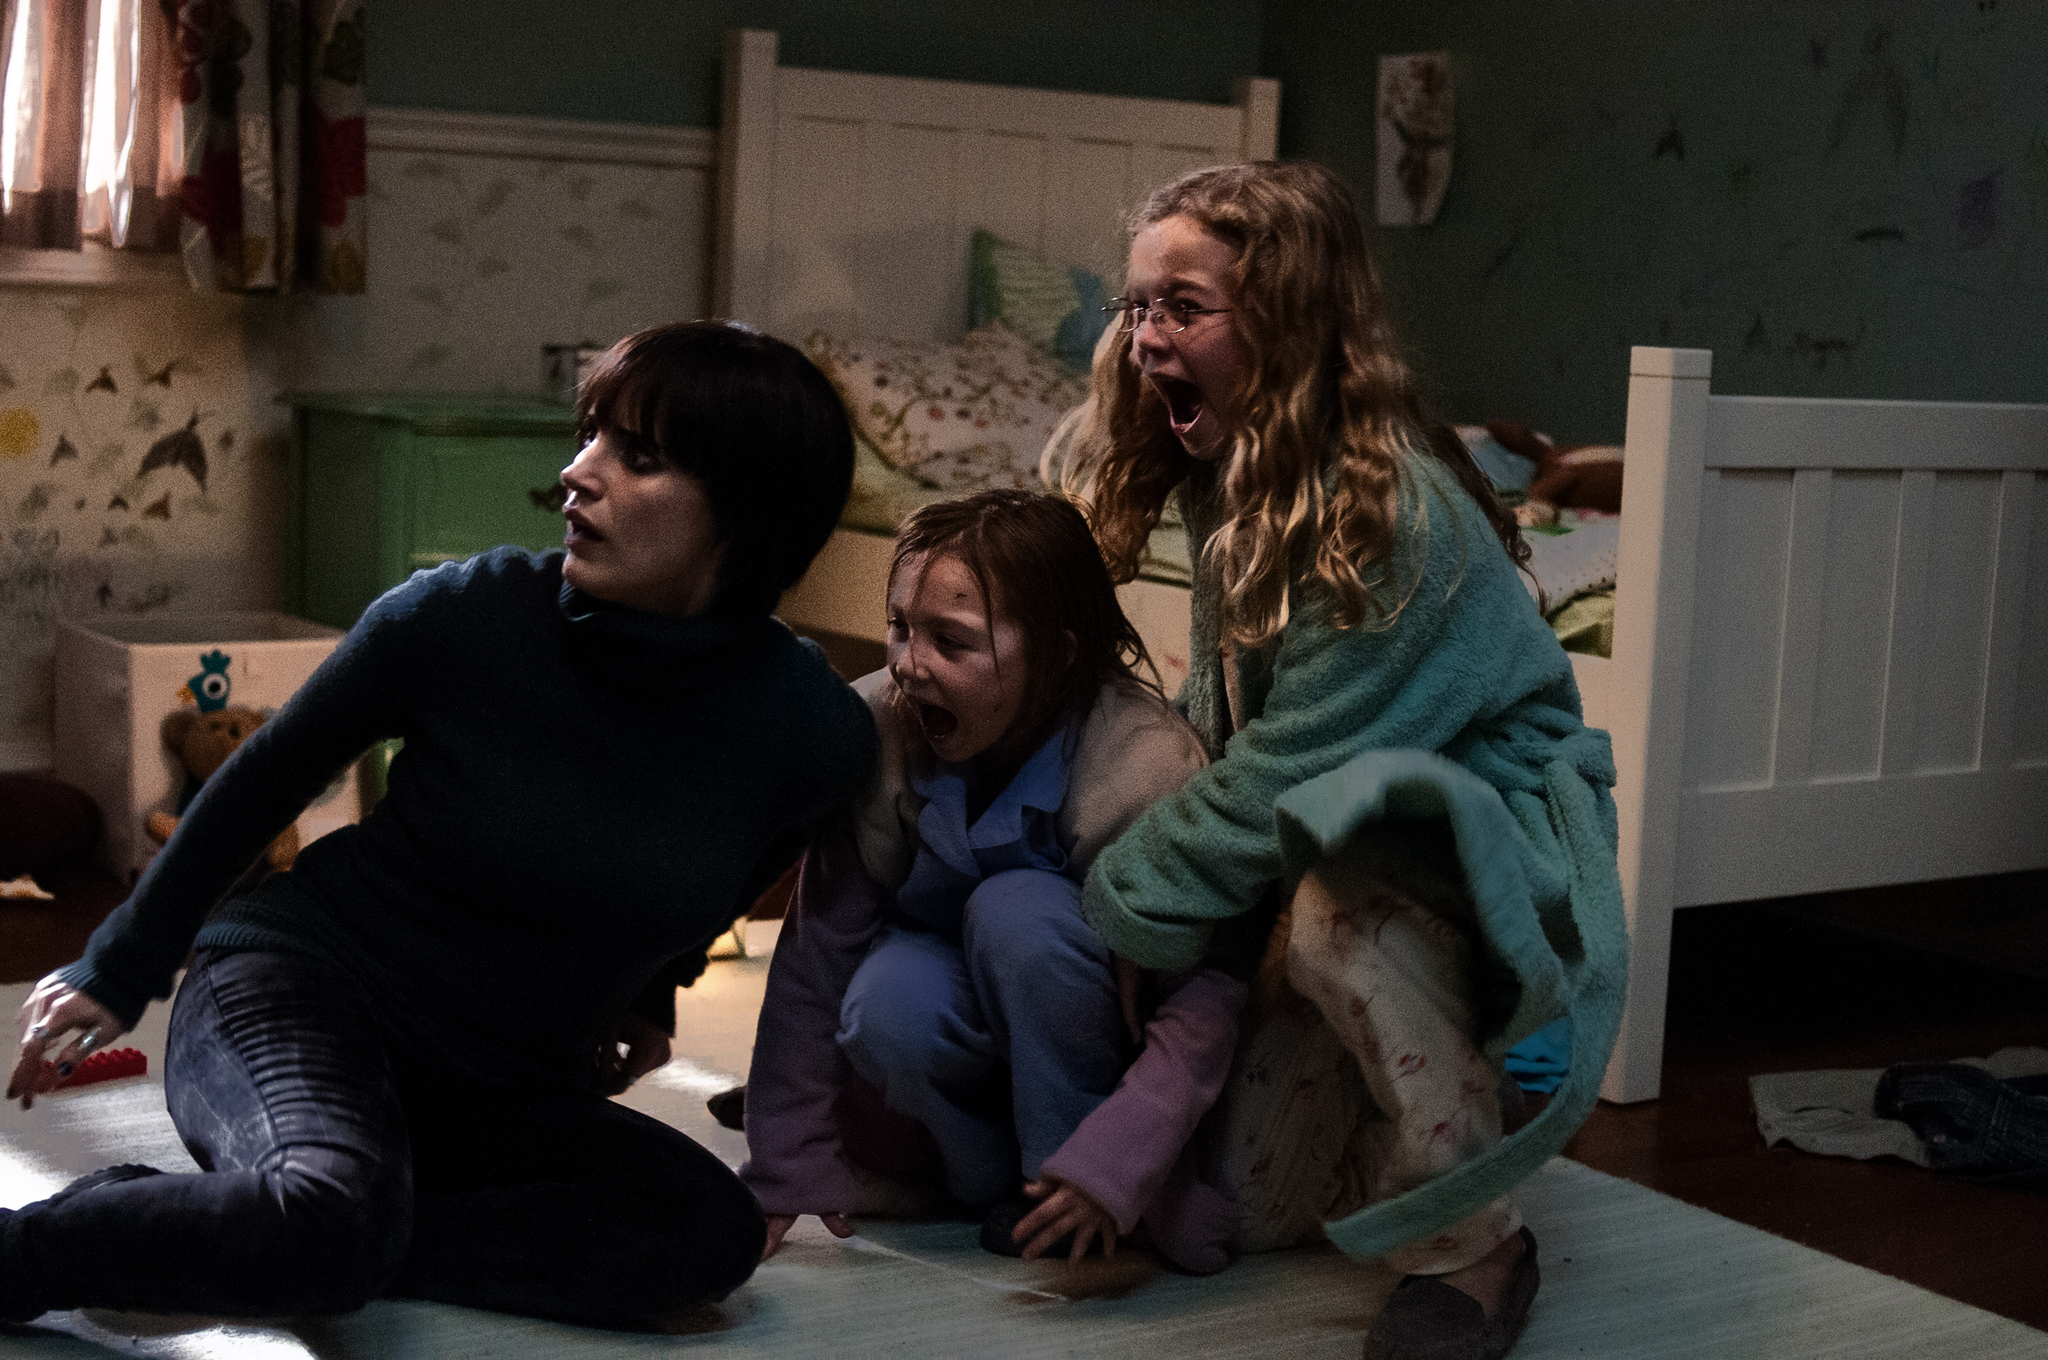 Jessica Chastain, Megan Charpentier, and Isabelle Nélisse in Mama (2013)